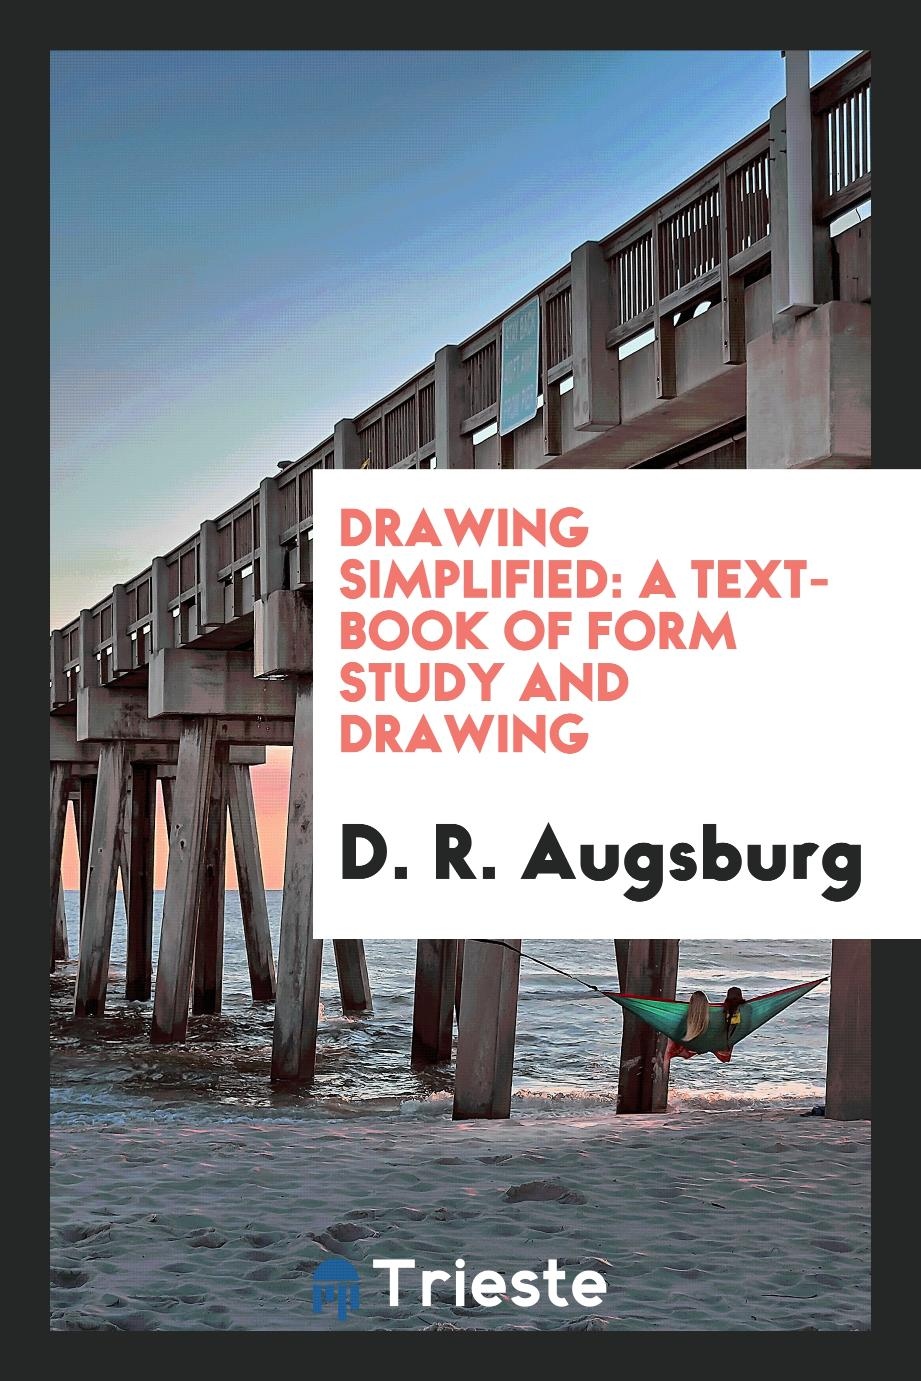 Drawing Simplified: A Text-Book of Form Study and Drawing